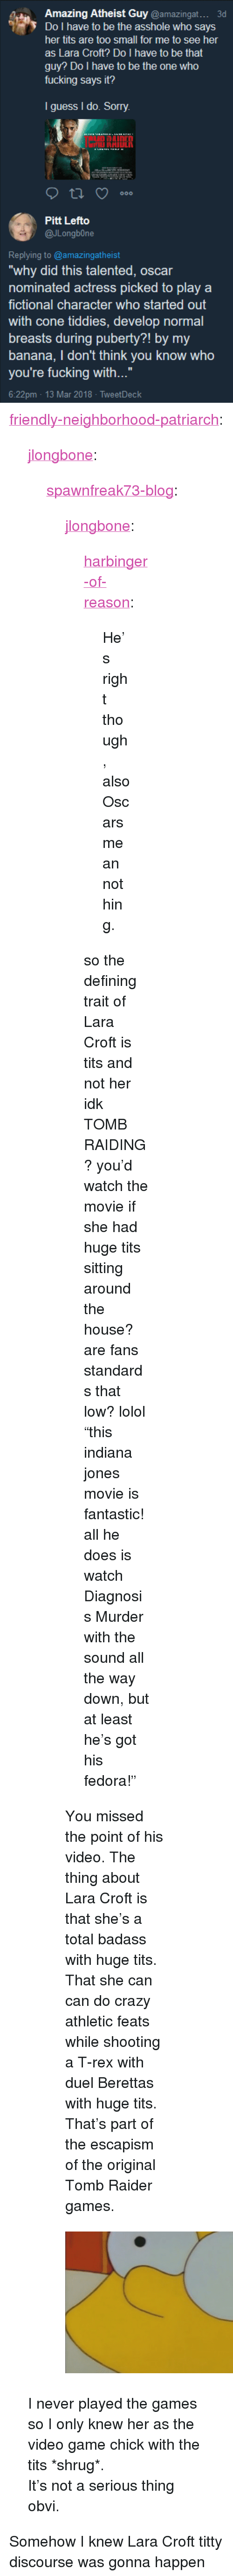 "Crazy, Fedora, and Fucking: Amazing Atheist Guy @amazingat...  3d  Do I have to be the asshole who says  her tits are too small for me to see her  as Lara Croft? Do I have to be that  guy? Do I have to be the one who  fucking says it?  I guess I do. Sorry.  Pitt Lefto  @Jlongb0ne  Replying to @amazingatheist  why did this talented, oscar  nominated actress picked to play a  fictional character who started out  with cone tiddies, develop normal  breasts during puberty?! by my  banana, I don't think you know who  you're fucking with...""  6.22pm 13 Mar 2018- TweetDeck <p><a href=""http://friendly-neighborhood-patriarch.tumblr.com/post/171846815967/jlongbone-spawnfreak73-blog-jlongbone"" class=""tumblr_blog"">friendly-neighborhood-patriarch</a>:</p>  <blockquote><p><a href=""https://jlongbone.tumblr.com/post/171846707944/spawnfreak73-blog-jlongbone"" class=""tumblr_blog"">jlongbone</a>:</p>  <blockquote><p><a href=""http://spawnfreak73-blog.tumblr.com/post/171846543950/jlongbone-harbinger-of-reason-hes-right"" class=""tumblr_blog"">spawnfreak73-blog</a>:</p><blockquote> <p><a href=""https://jlongbone.tumblr.com/post/171845744174/harbinger-of-reason-hes-right-though-also"" class=""tumblr_blog"">jlongbone</a>:</p> <blockquote> <p><a href=""http://harbinger-of-reason.tumblr.com/post/171845554232/hes-right-though-also-oscars-mean-nothing"" class=""tumblr_blog"">harbinger-of-reason</a>:</p> <blockquote><p>He's right though, also Oscars mean nothing.</p></blockquote> <p>so the defining trait of Lara Croft is tits and not her idk TOMB RAIDING? you'd watch the movie if she had huge tits sitting around the house? are fans standards that low? lolol</p> <p>""this indiana jones movie is fantastic! all he does is watch Diagnosis Murder with the sound all the way down, but at least he's got his fedora!""<br/></p> </blockquote> <p>You missed the point of his video. The thing about Lara Croft is that she's a total badass with huge tits. That she can can do crazy athletic feats while shooting a T-rex with duel Berettas with huge tits. That's part of the escapism of the original Tomb Raider games.<br/></p> </blockquote> <figure class=""tmblr-full"" data-orig-height=""1080"" data-orig-width=""1920""><img src=""https://78.media.tumblr.com/9ff89a25ead88ab5acd5cf9b7d36e36d/tumblr_inline_p5k0lnP6mD1vxc64r_540.jpg"" data-orig-height=""1080"" data-orig-width=""1920""/></figure></blockquote>  <p>I never played the games so I only knew her as the video game chick with the tits *shrug*.</p><p>It's not a serious thing obvi.</p></blockquote>  <p>Somehow I knew Lara Croft titty discourse was gonna happen</p>"